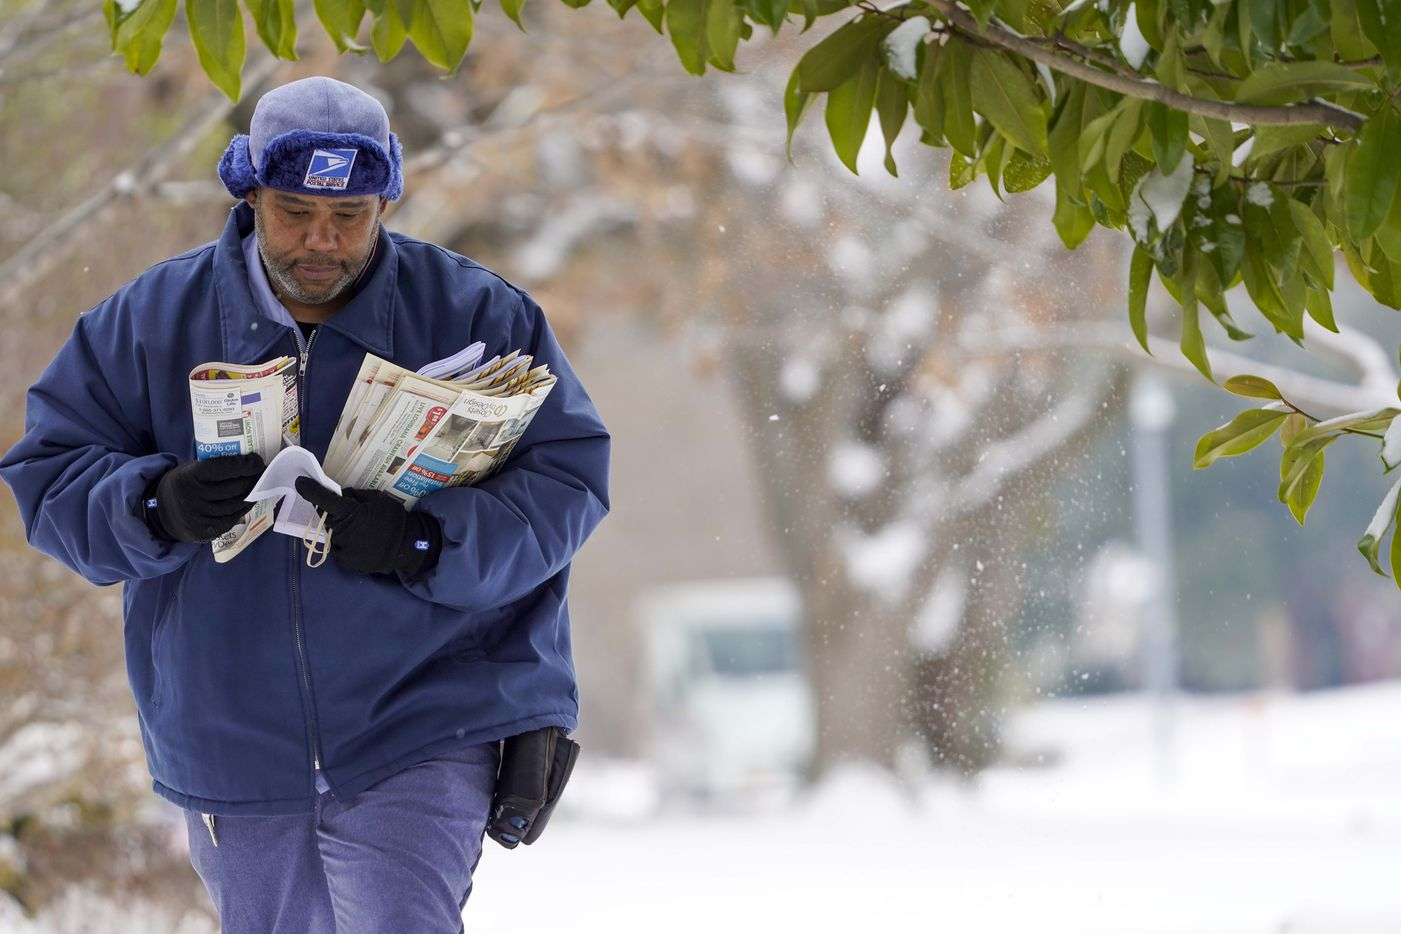 USPS mail carrier RayShawn Riley delivers mail to a snow covered neighborhood after a second winter storm brought more snow and continued freezing temperatures to North Texas on Wednesday, Feb. 17, 2021, in Richardson.